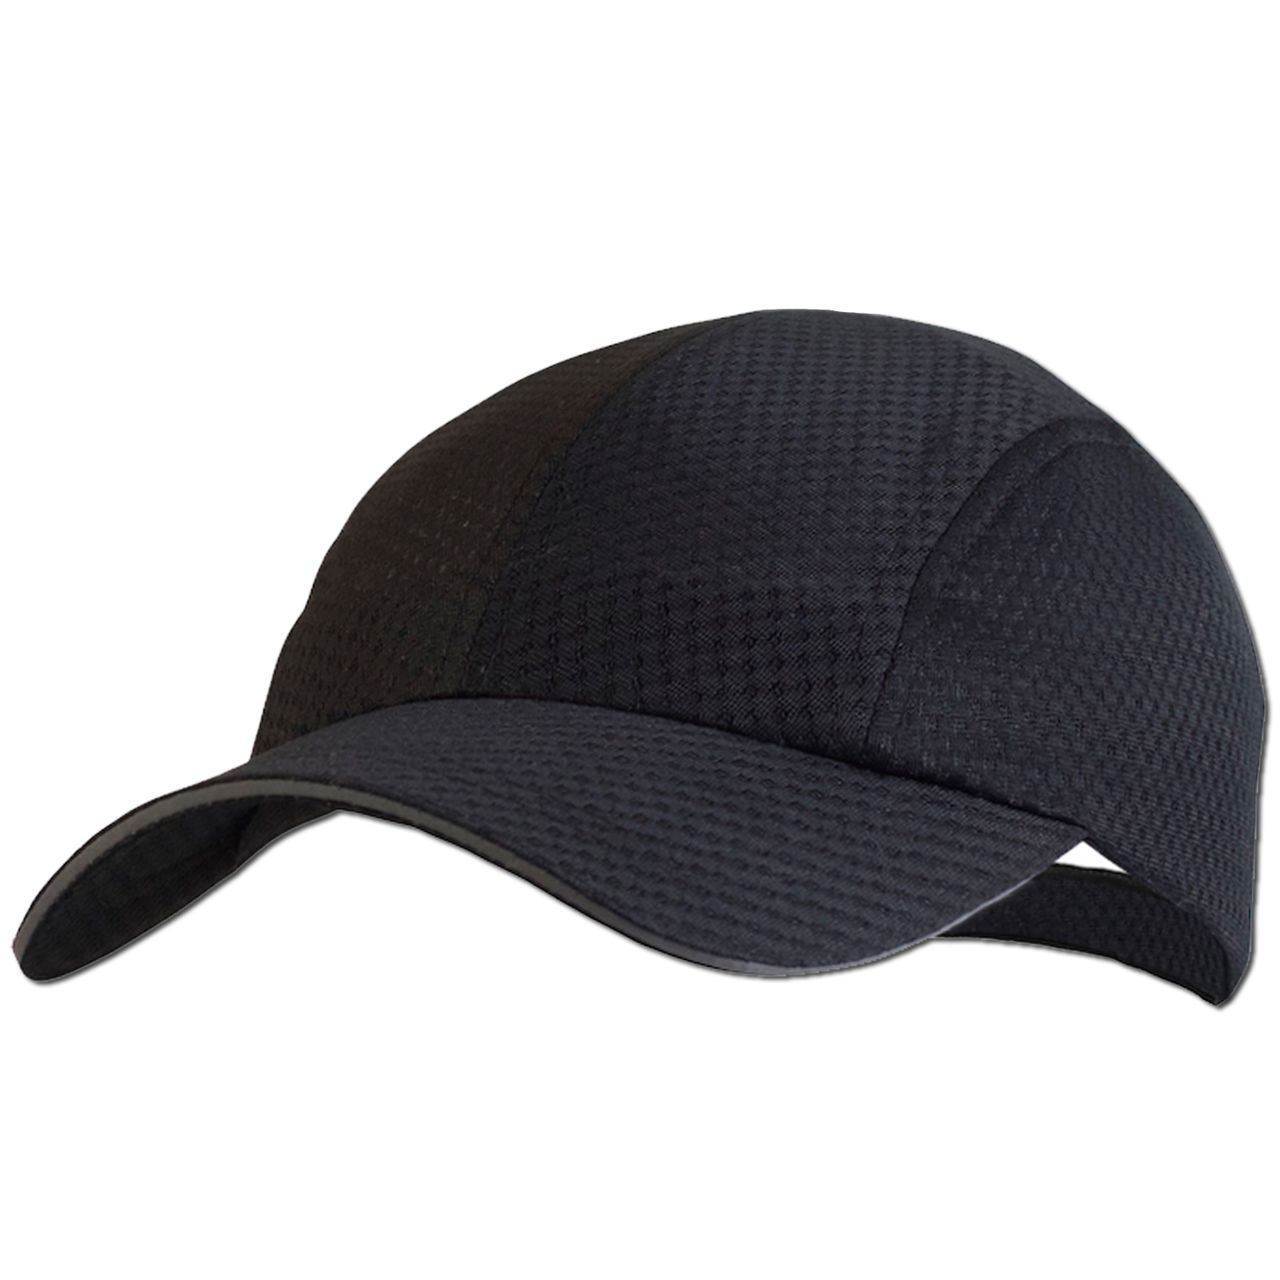 Women's Race Day Running Cap - Black by TrailHeads